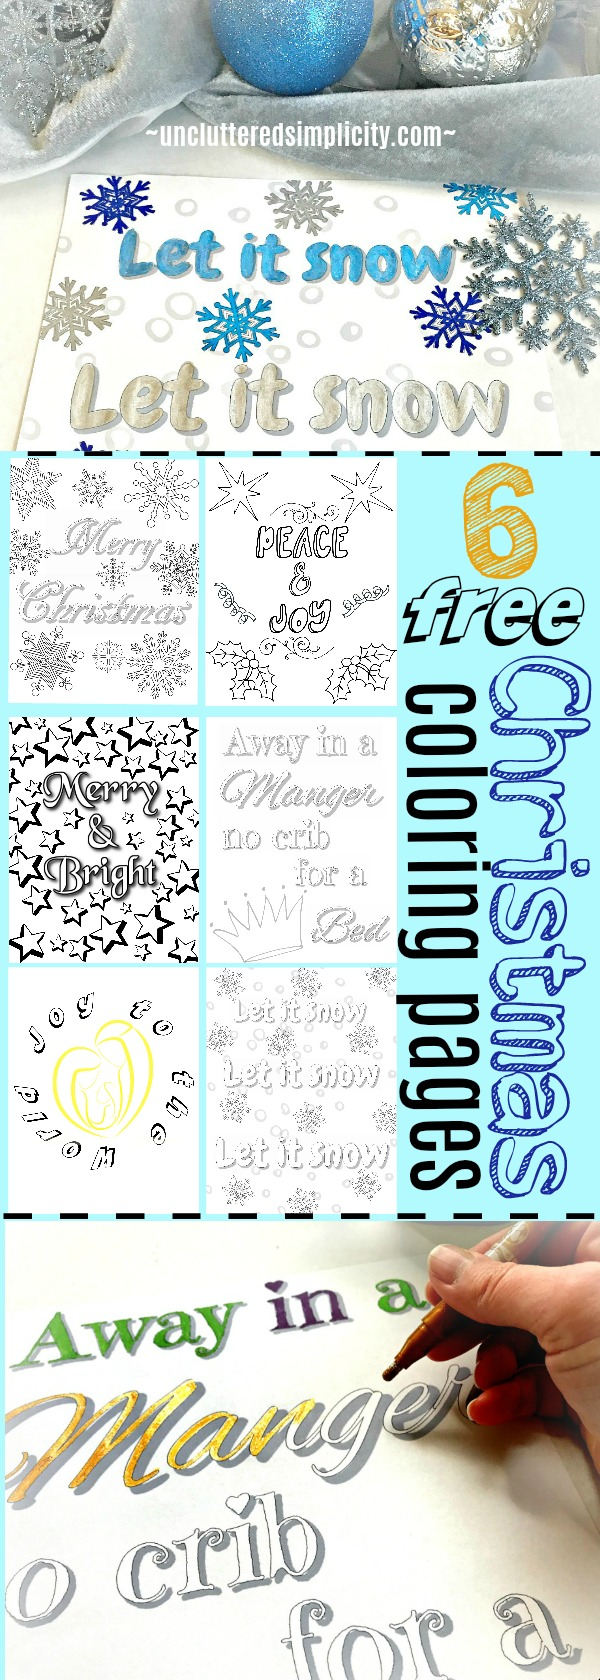 Free Printable Christmas Coloring Pages for Adults #christmascoloring #christmas2017 #freechristmasprintables #coloringpagesforadults